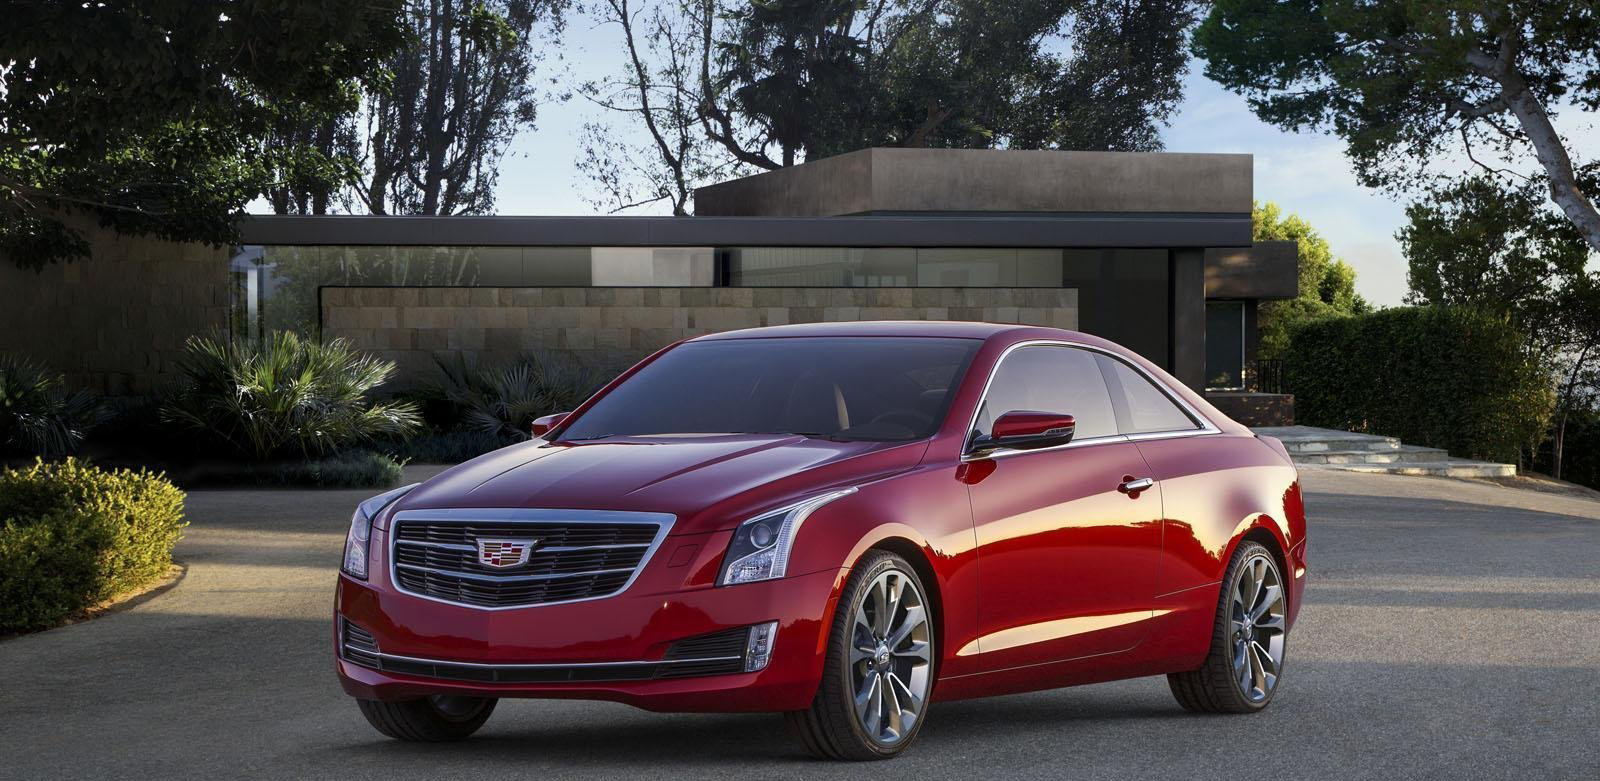 cadillac ats crimson sport edition. Black Bedroom Furniture Sets. Home Design Ideas